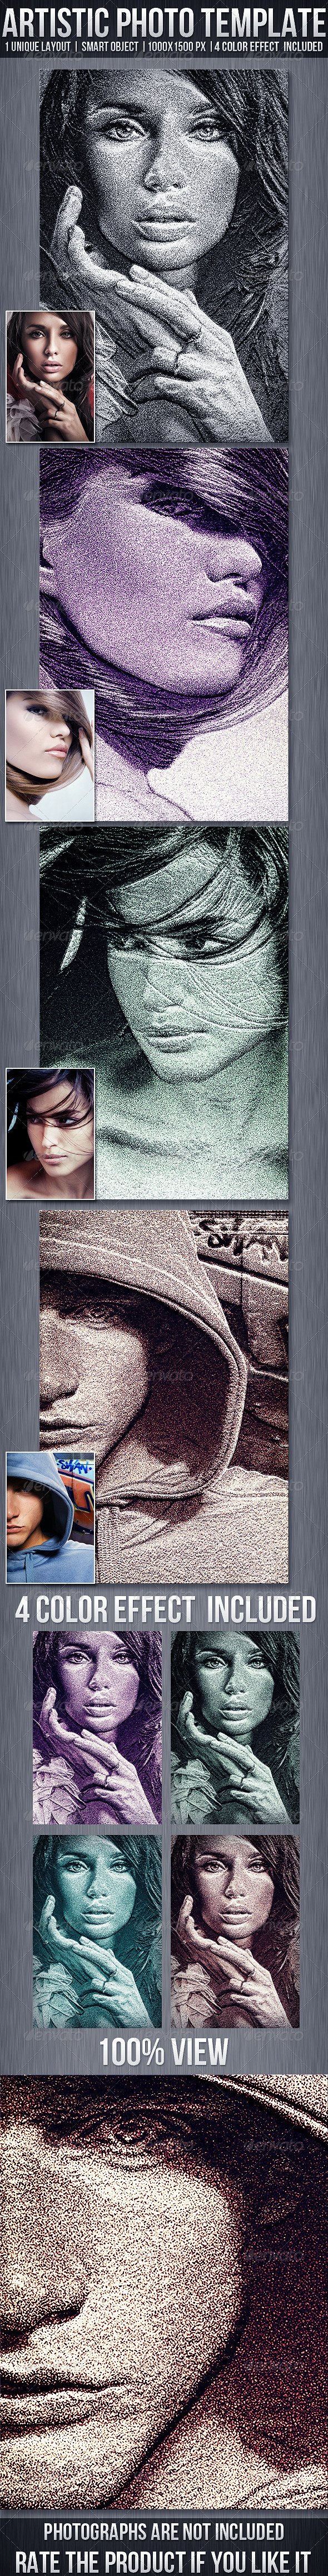 Artistic Photo Templates - Artistic Photo Templates